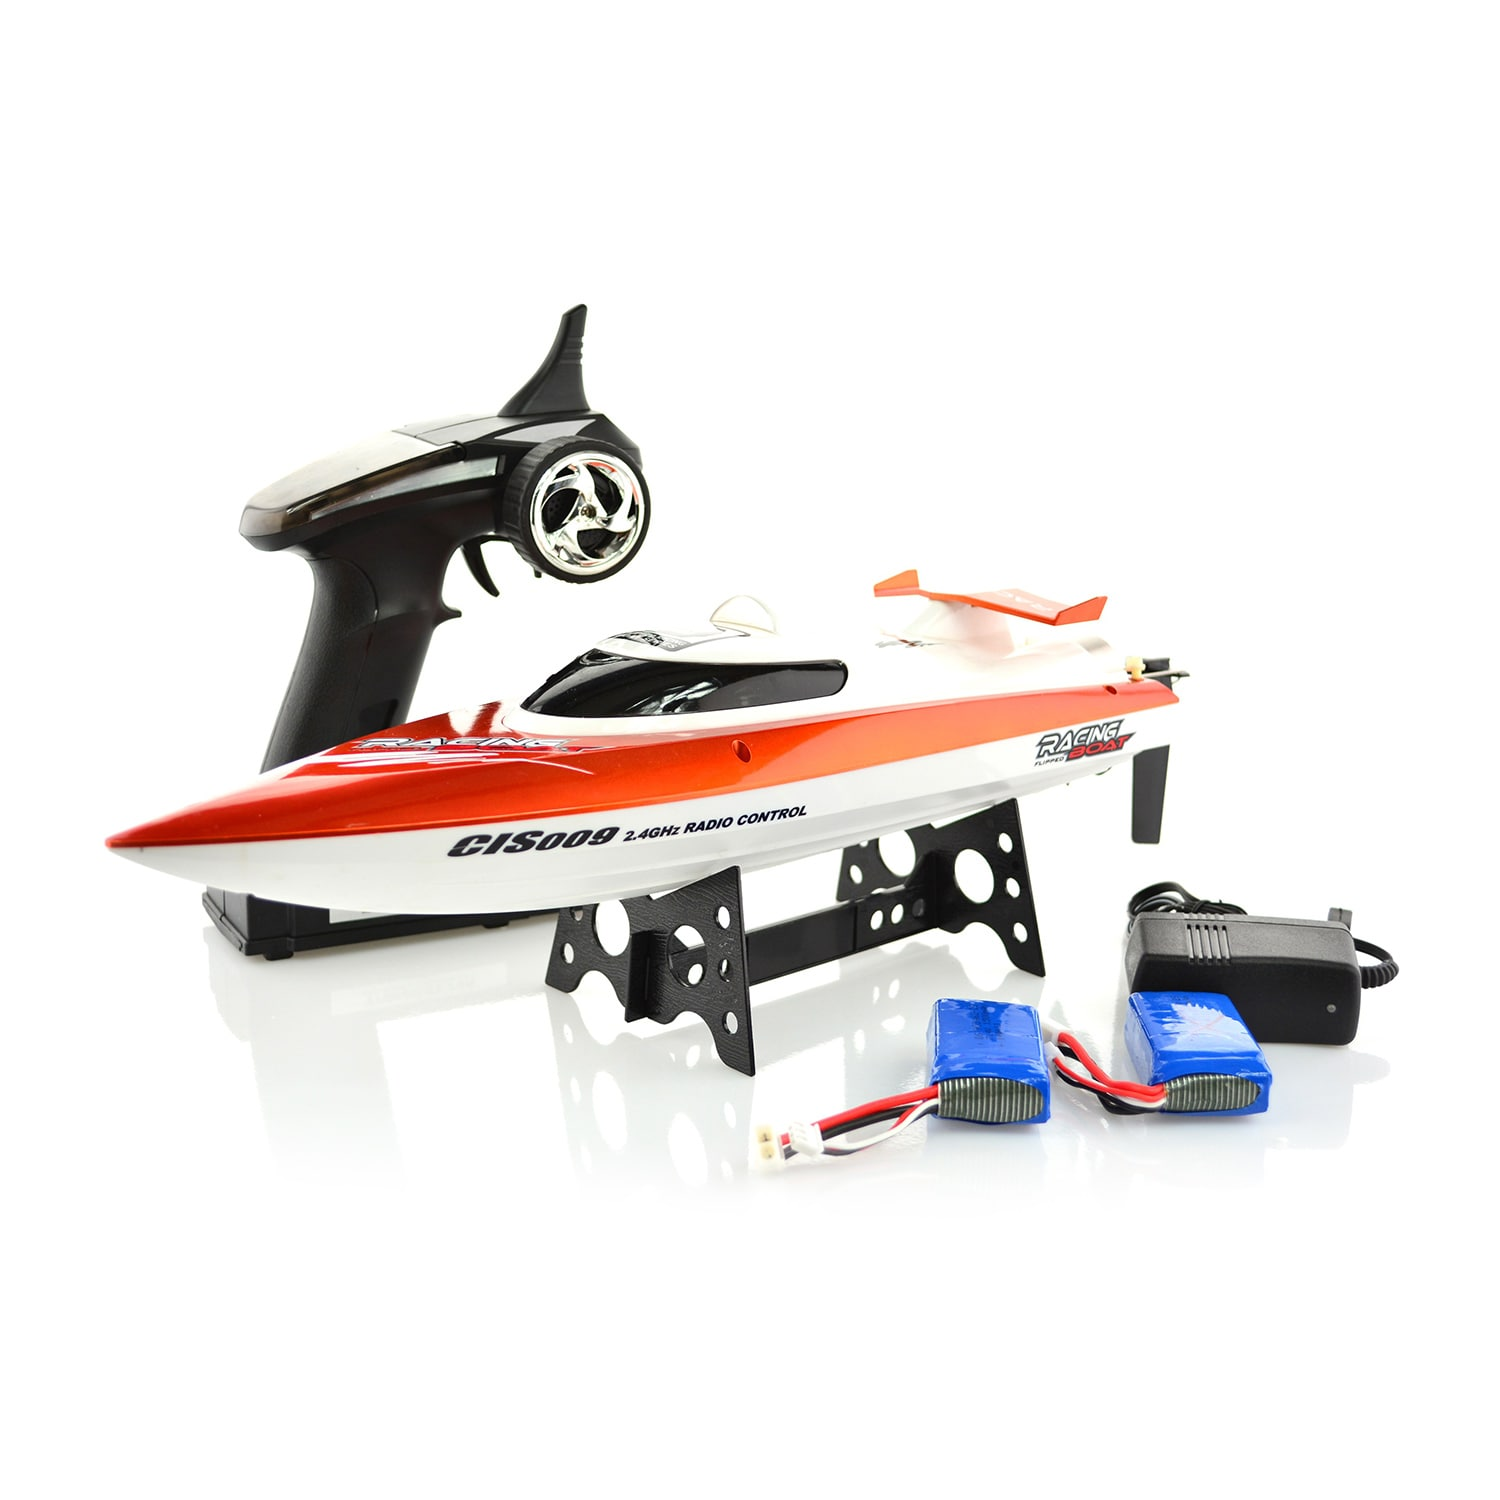 CIS-009 20 MPH Speed Boat